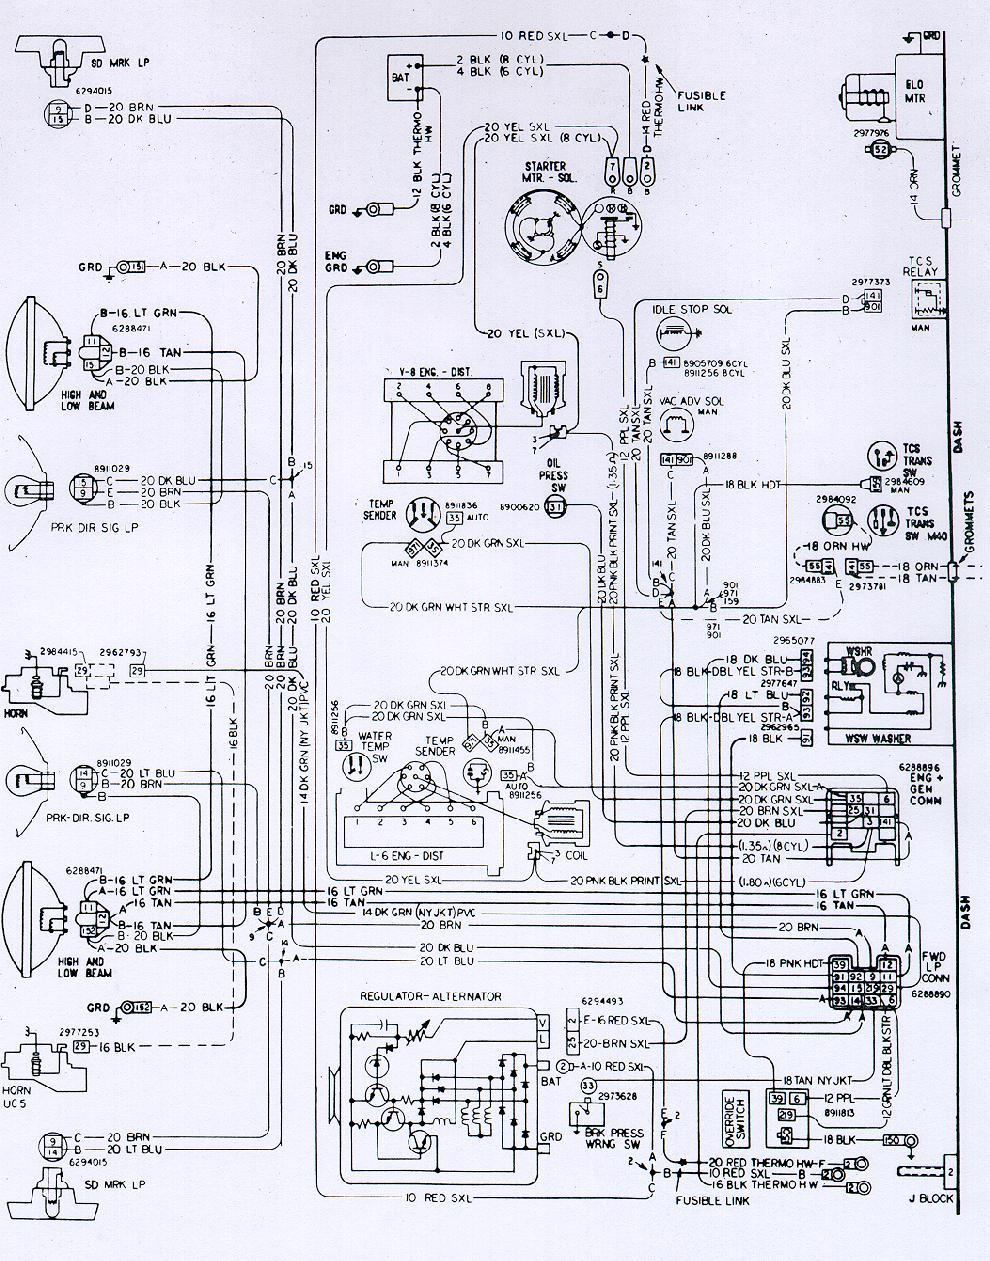 hight resolution of 1971 camaro amp gauge wiring diagram wiring diagram blogs 1969 chevy camaro wiring 71 camaro amp gauge wiring diagram